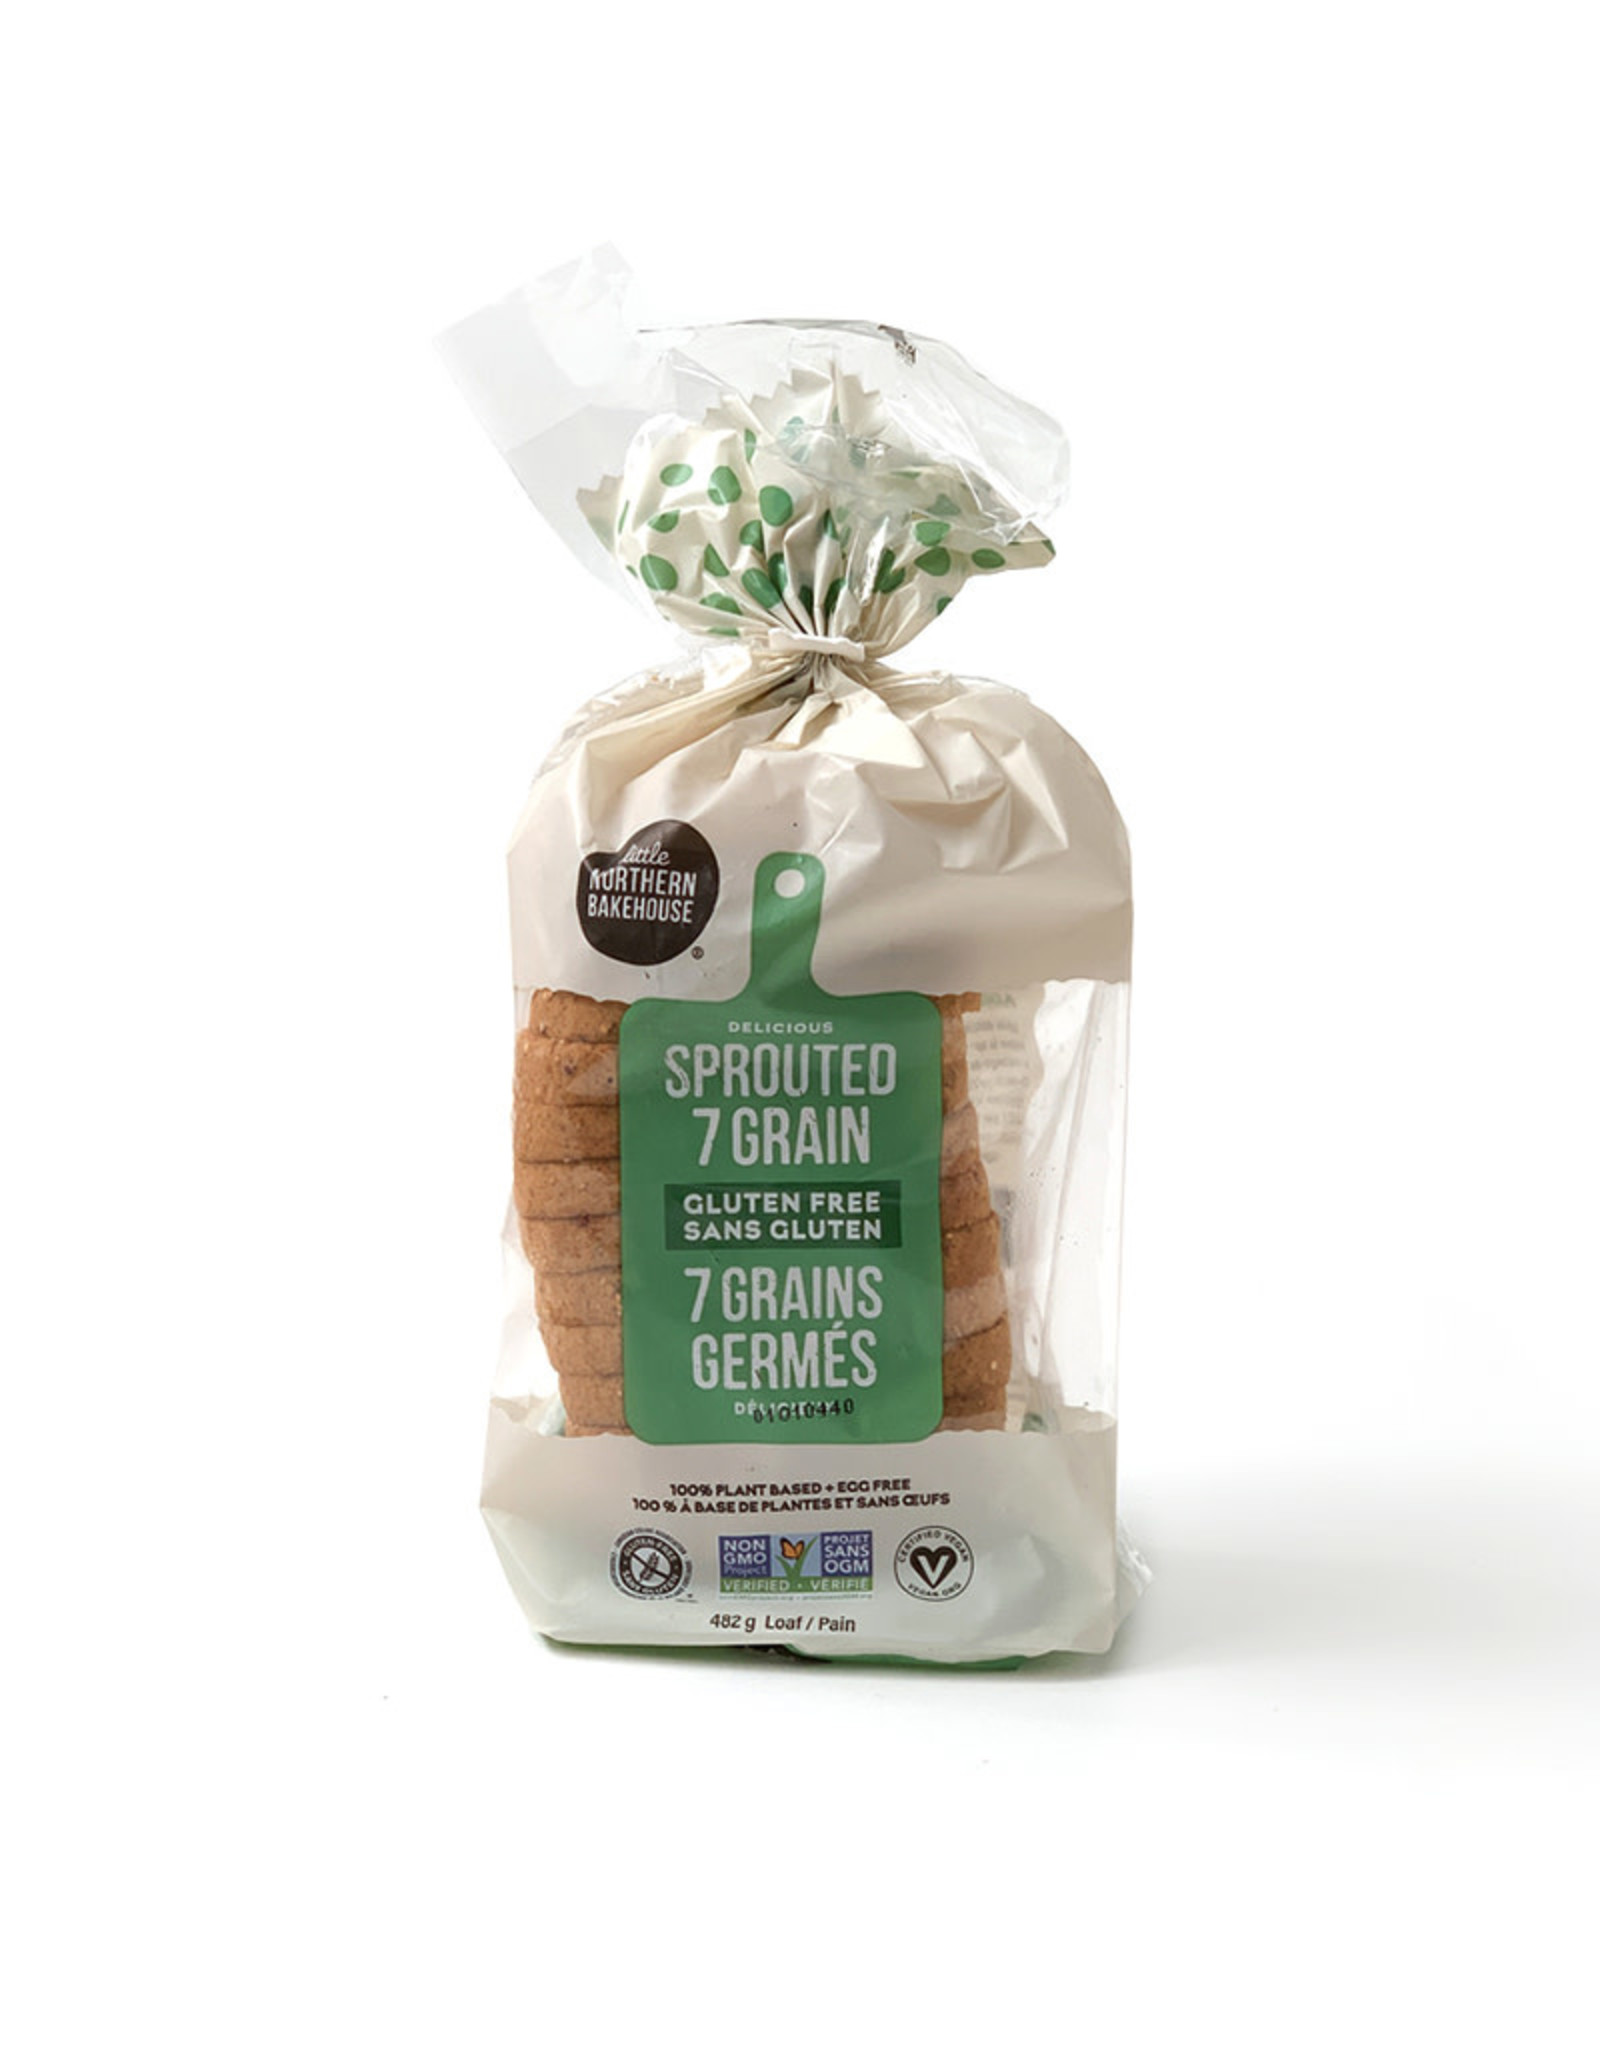 Northern Bakehouse Little Northern Bakehouse - GF Bread, Sprouted 7 Grain